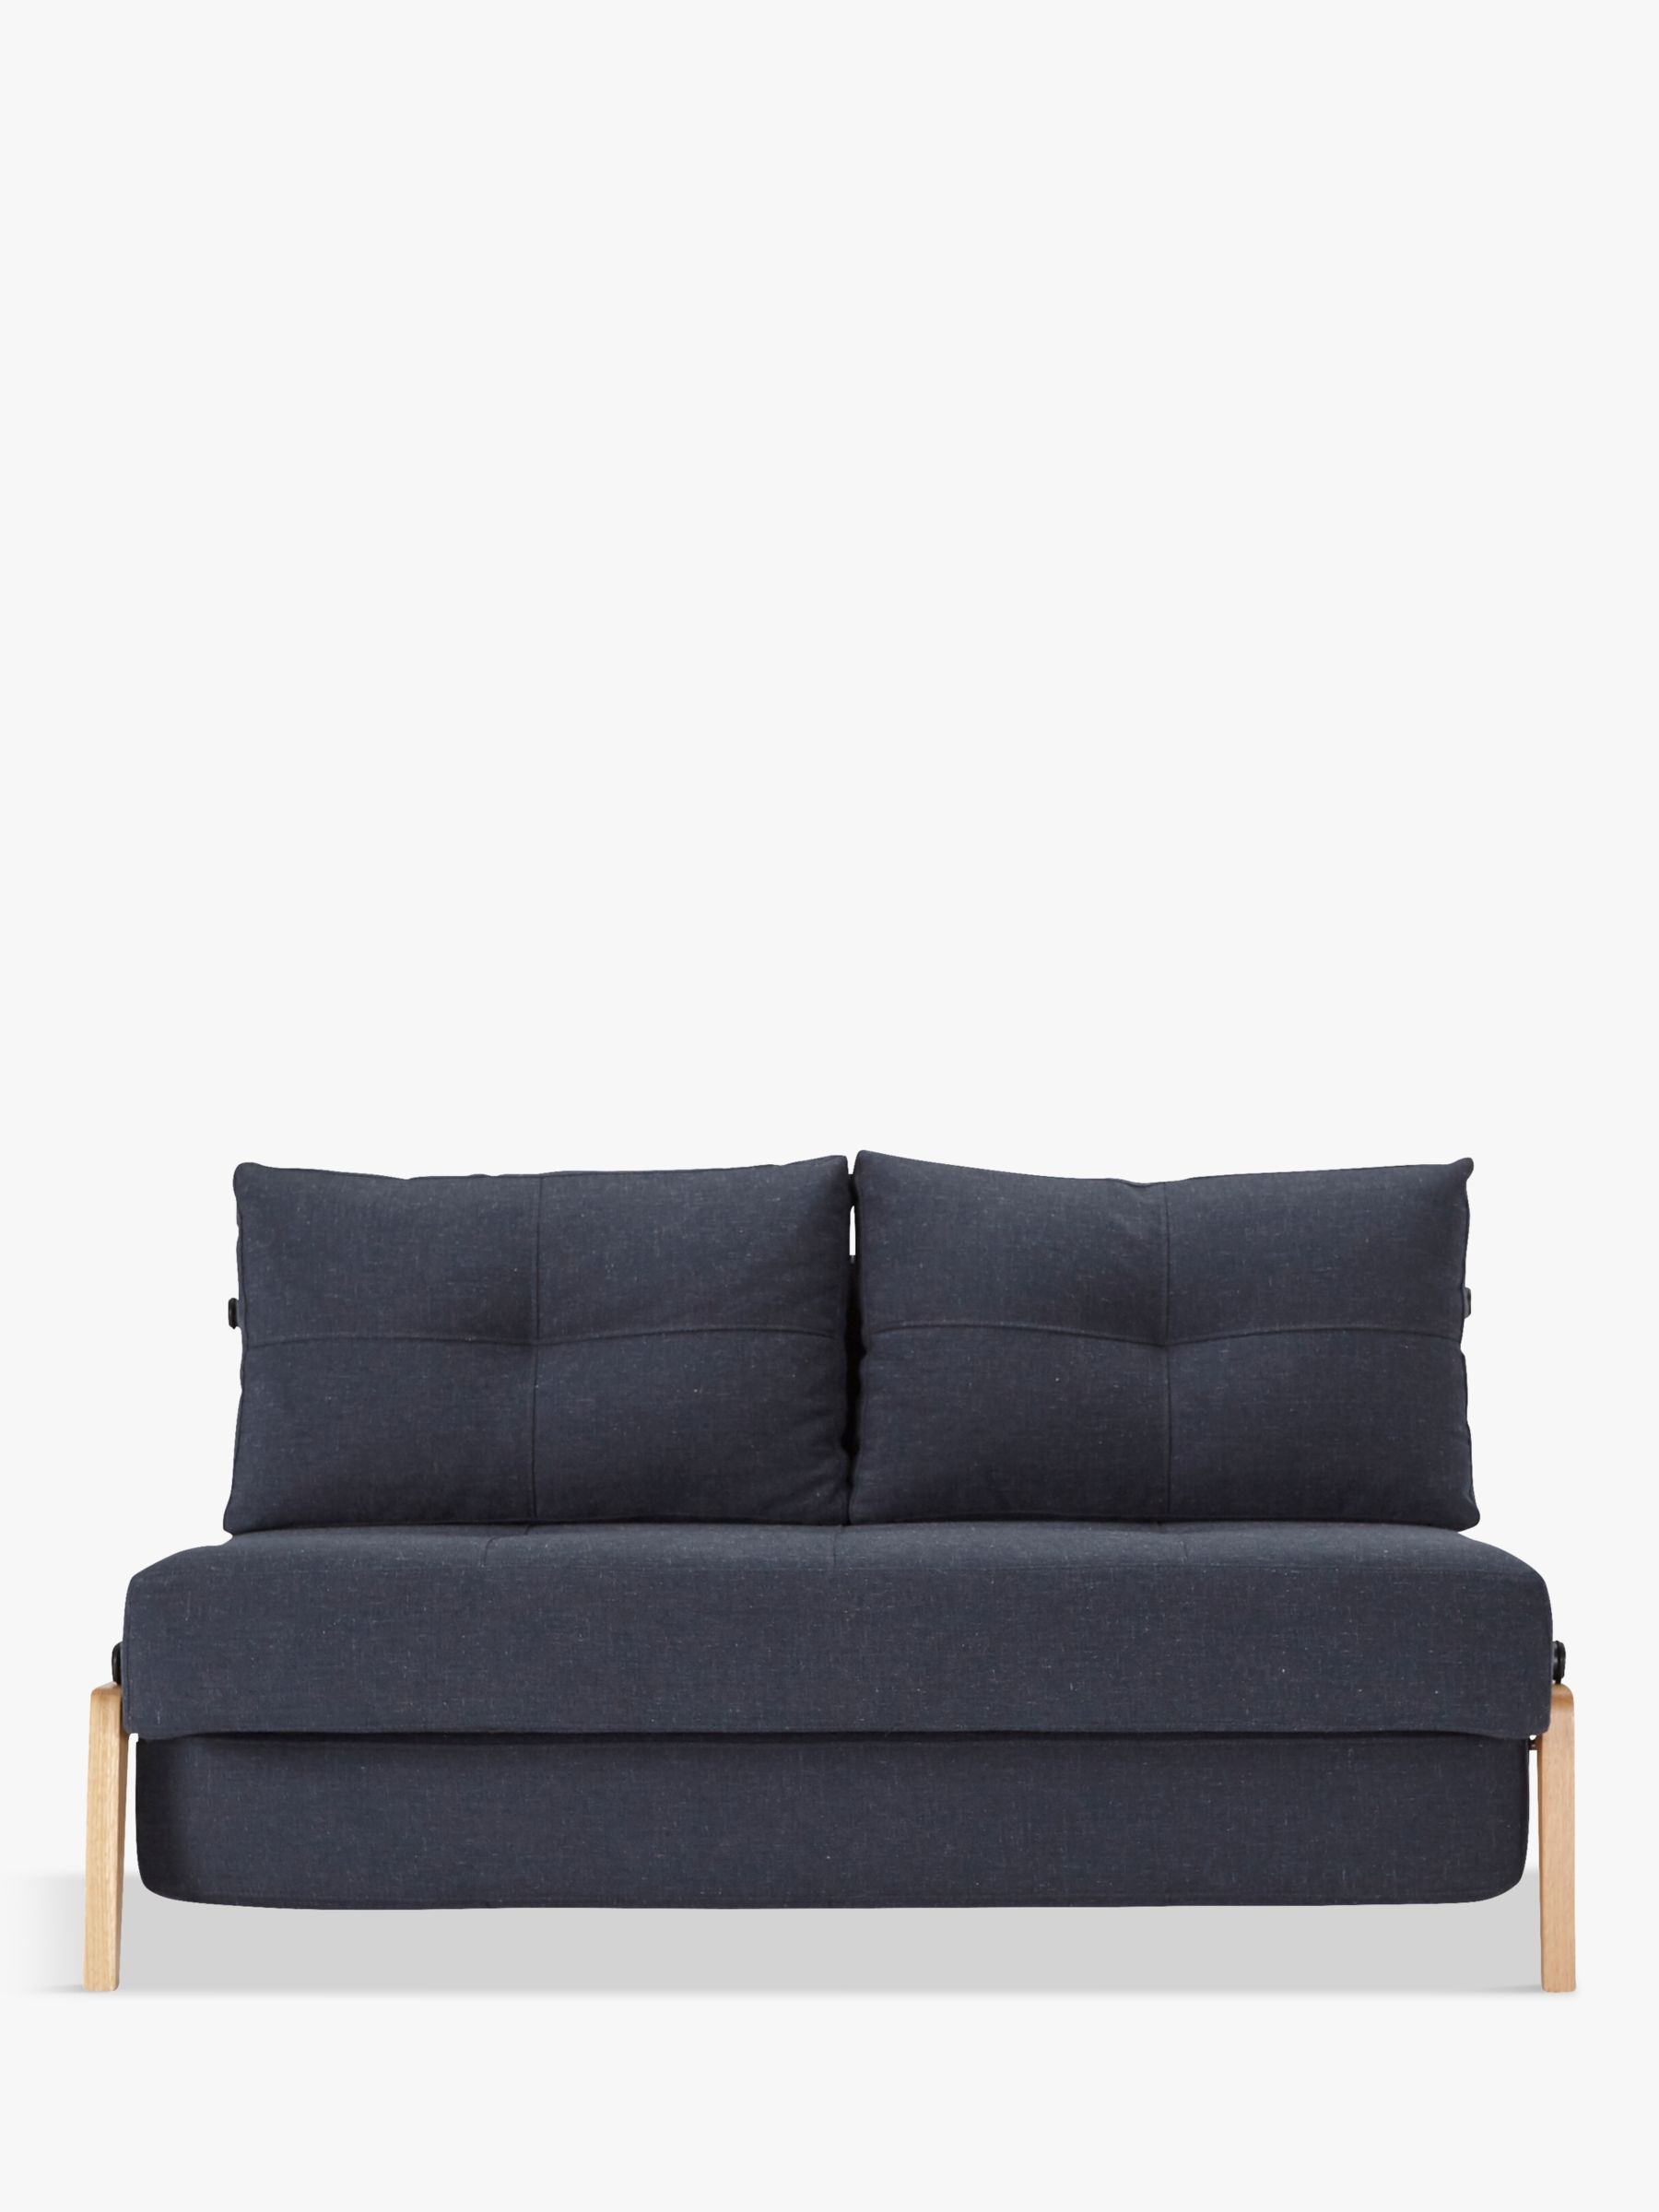 Serpentine Sprung With Foam Sofa Living Cubed Blue 140 MattressNist Bed Innovation If6vYbyg7